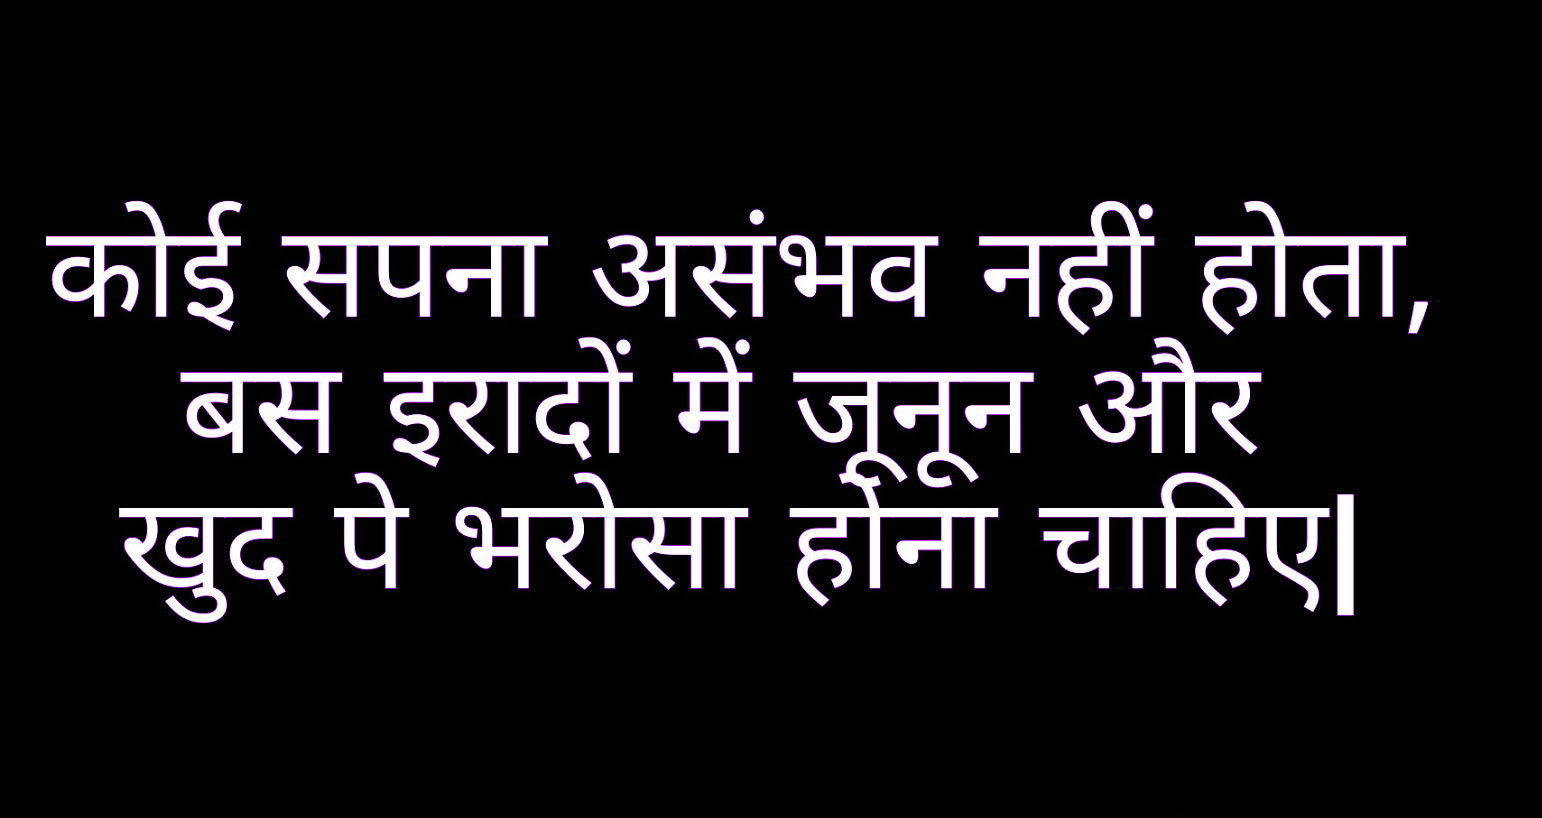 HINDI SAD LOVE ROMANTIC LIFE BEST HINDI SHAYARI IMAGES WALLPAPER FREE DOWNLOAD & SHARE